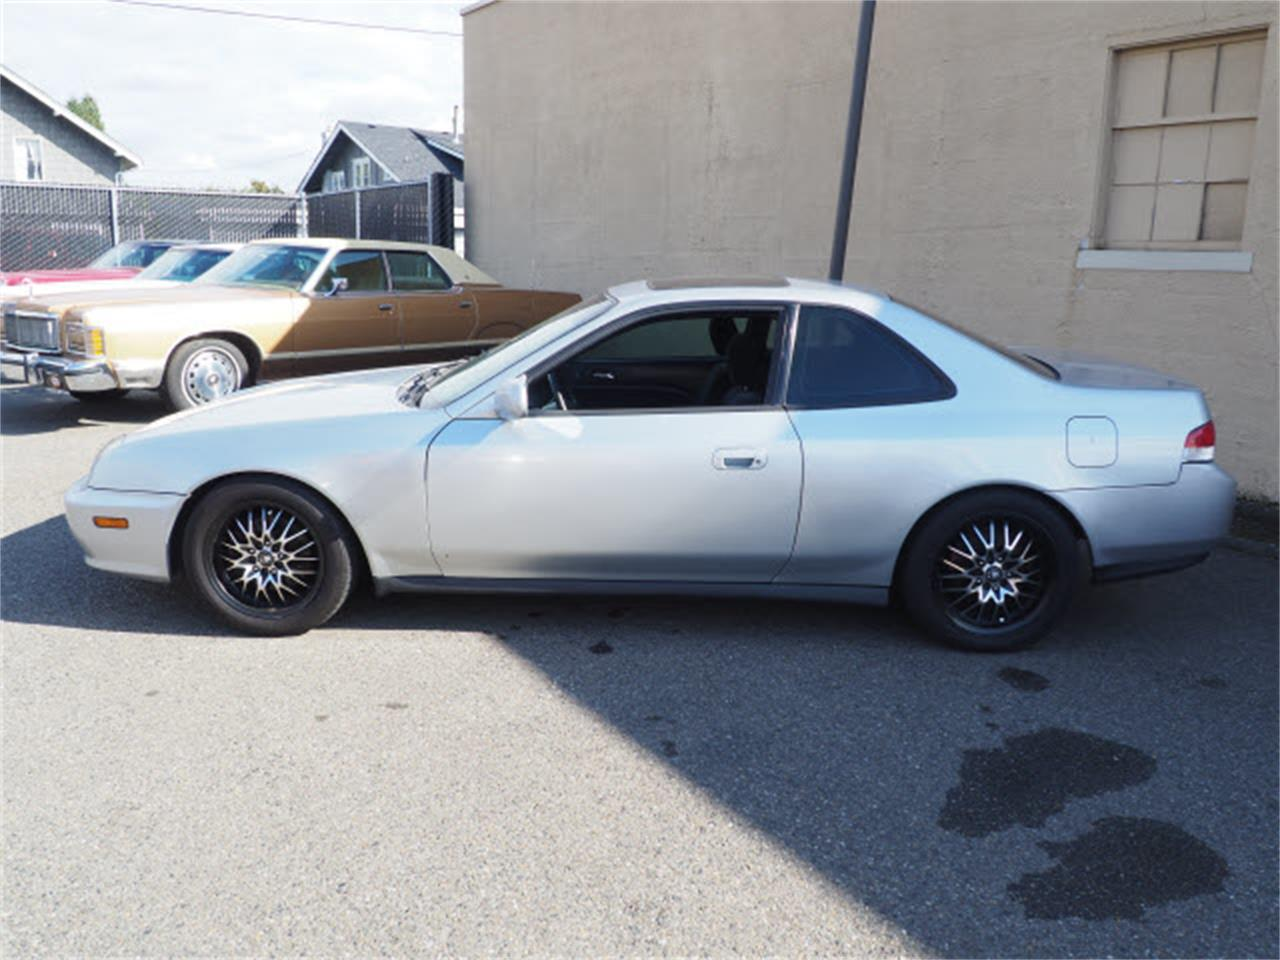 Large Picture of 2001 Honda Prelude - $4,990.00 Offered by Sabeti Motors - R37J